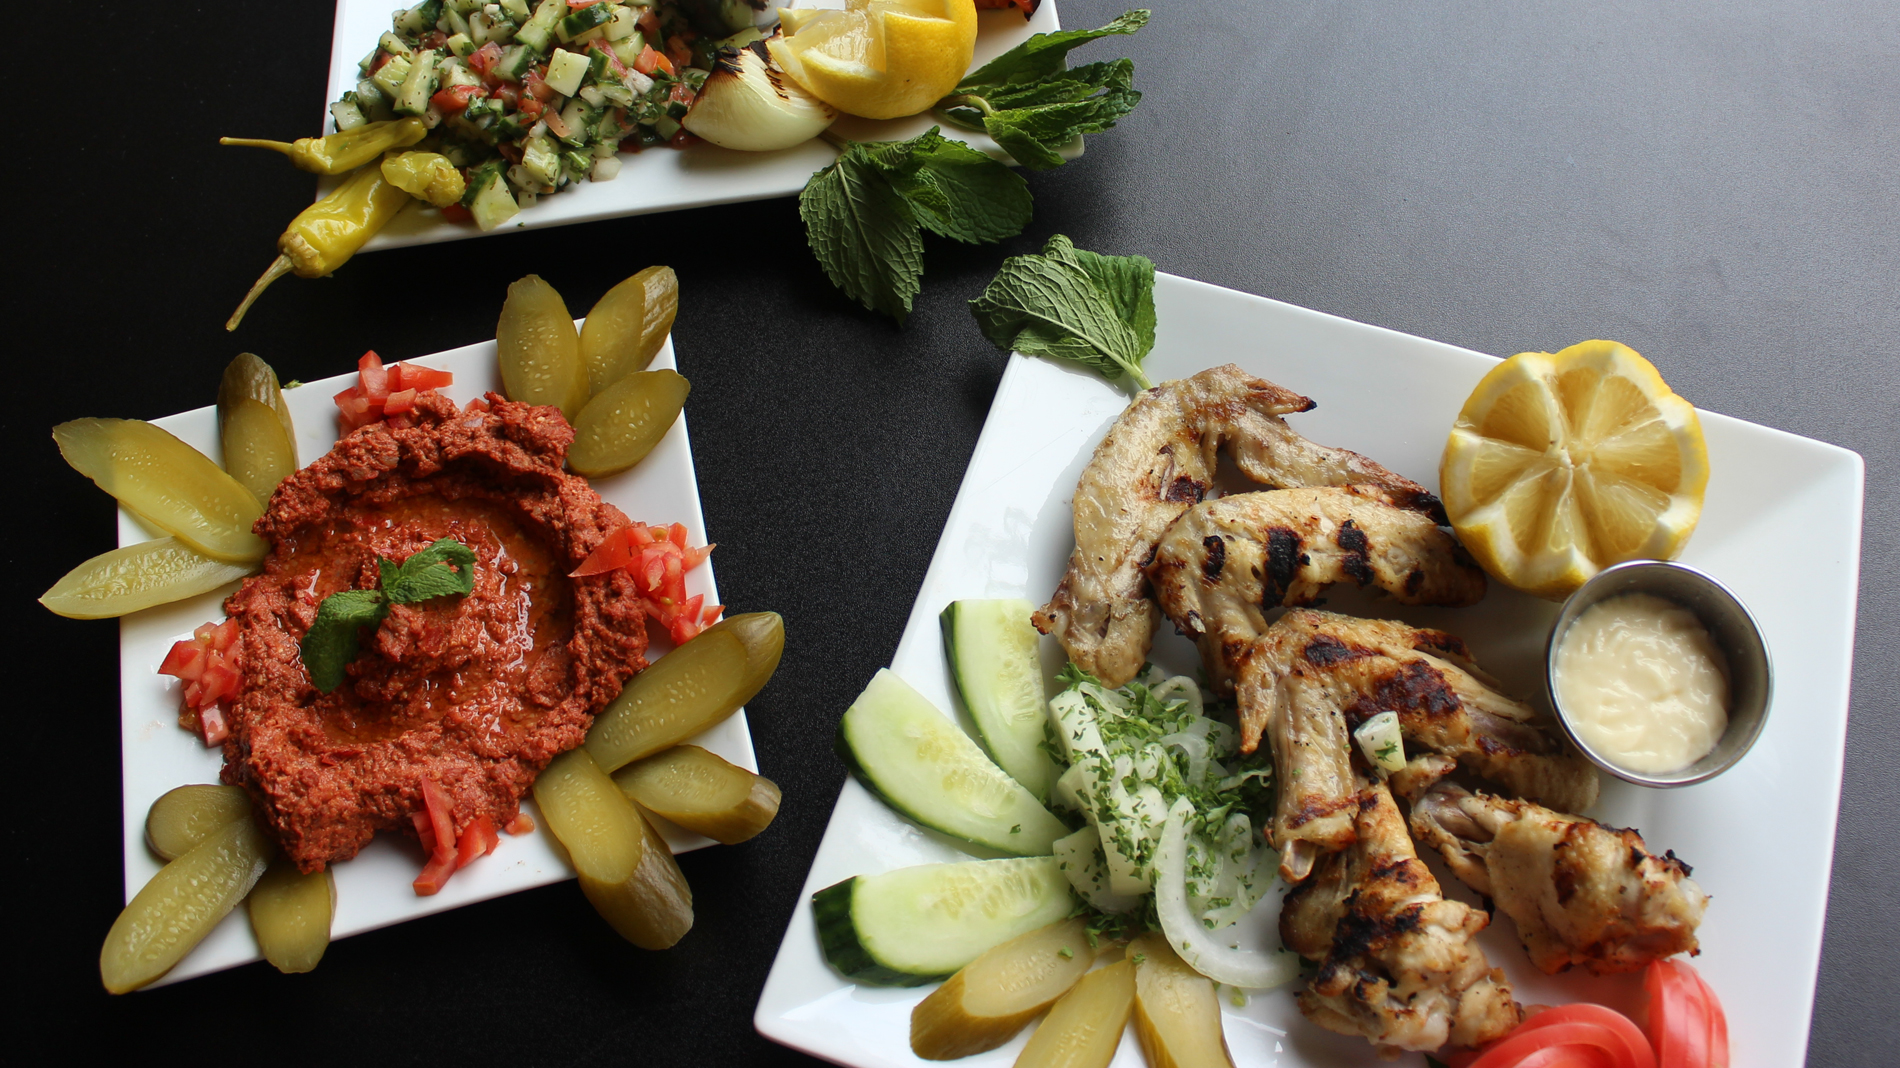 Levant Mixed Grill, grilled chicken wings and muhammara at levant in st. louis